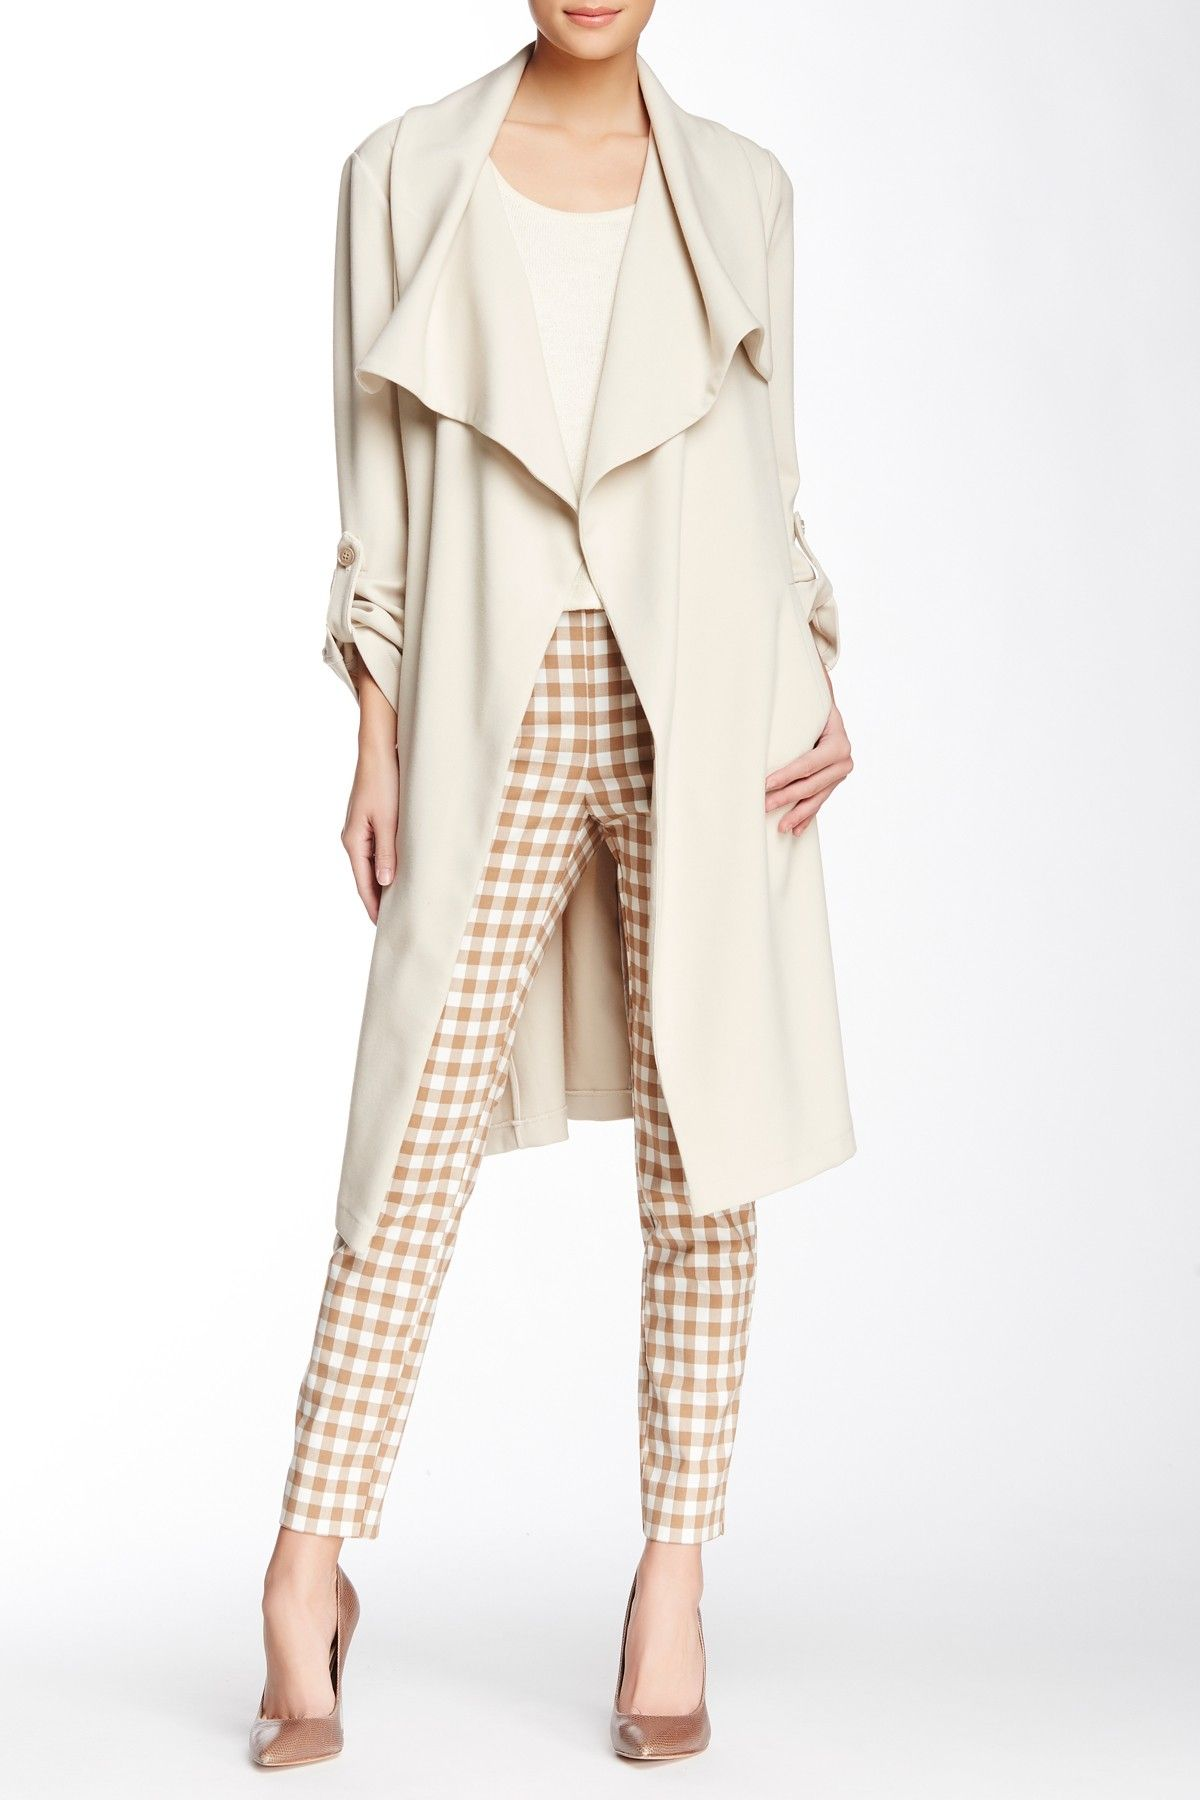 Draped & Belted Trench Coat by Soia & Kyo on @nordstrom_rack